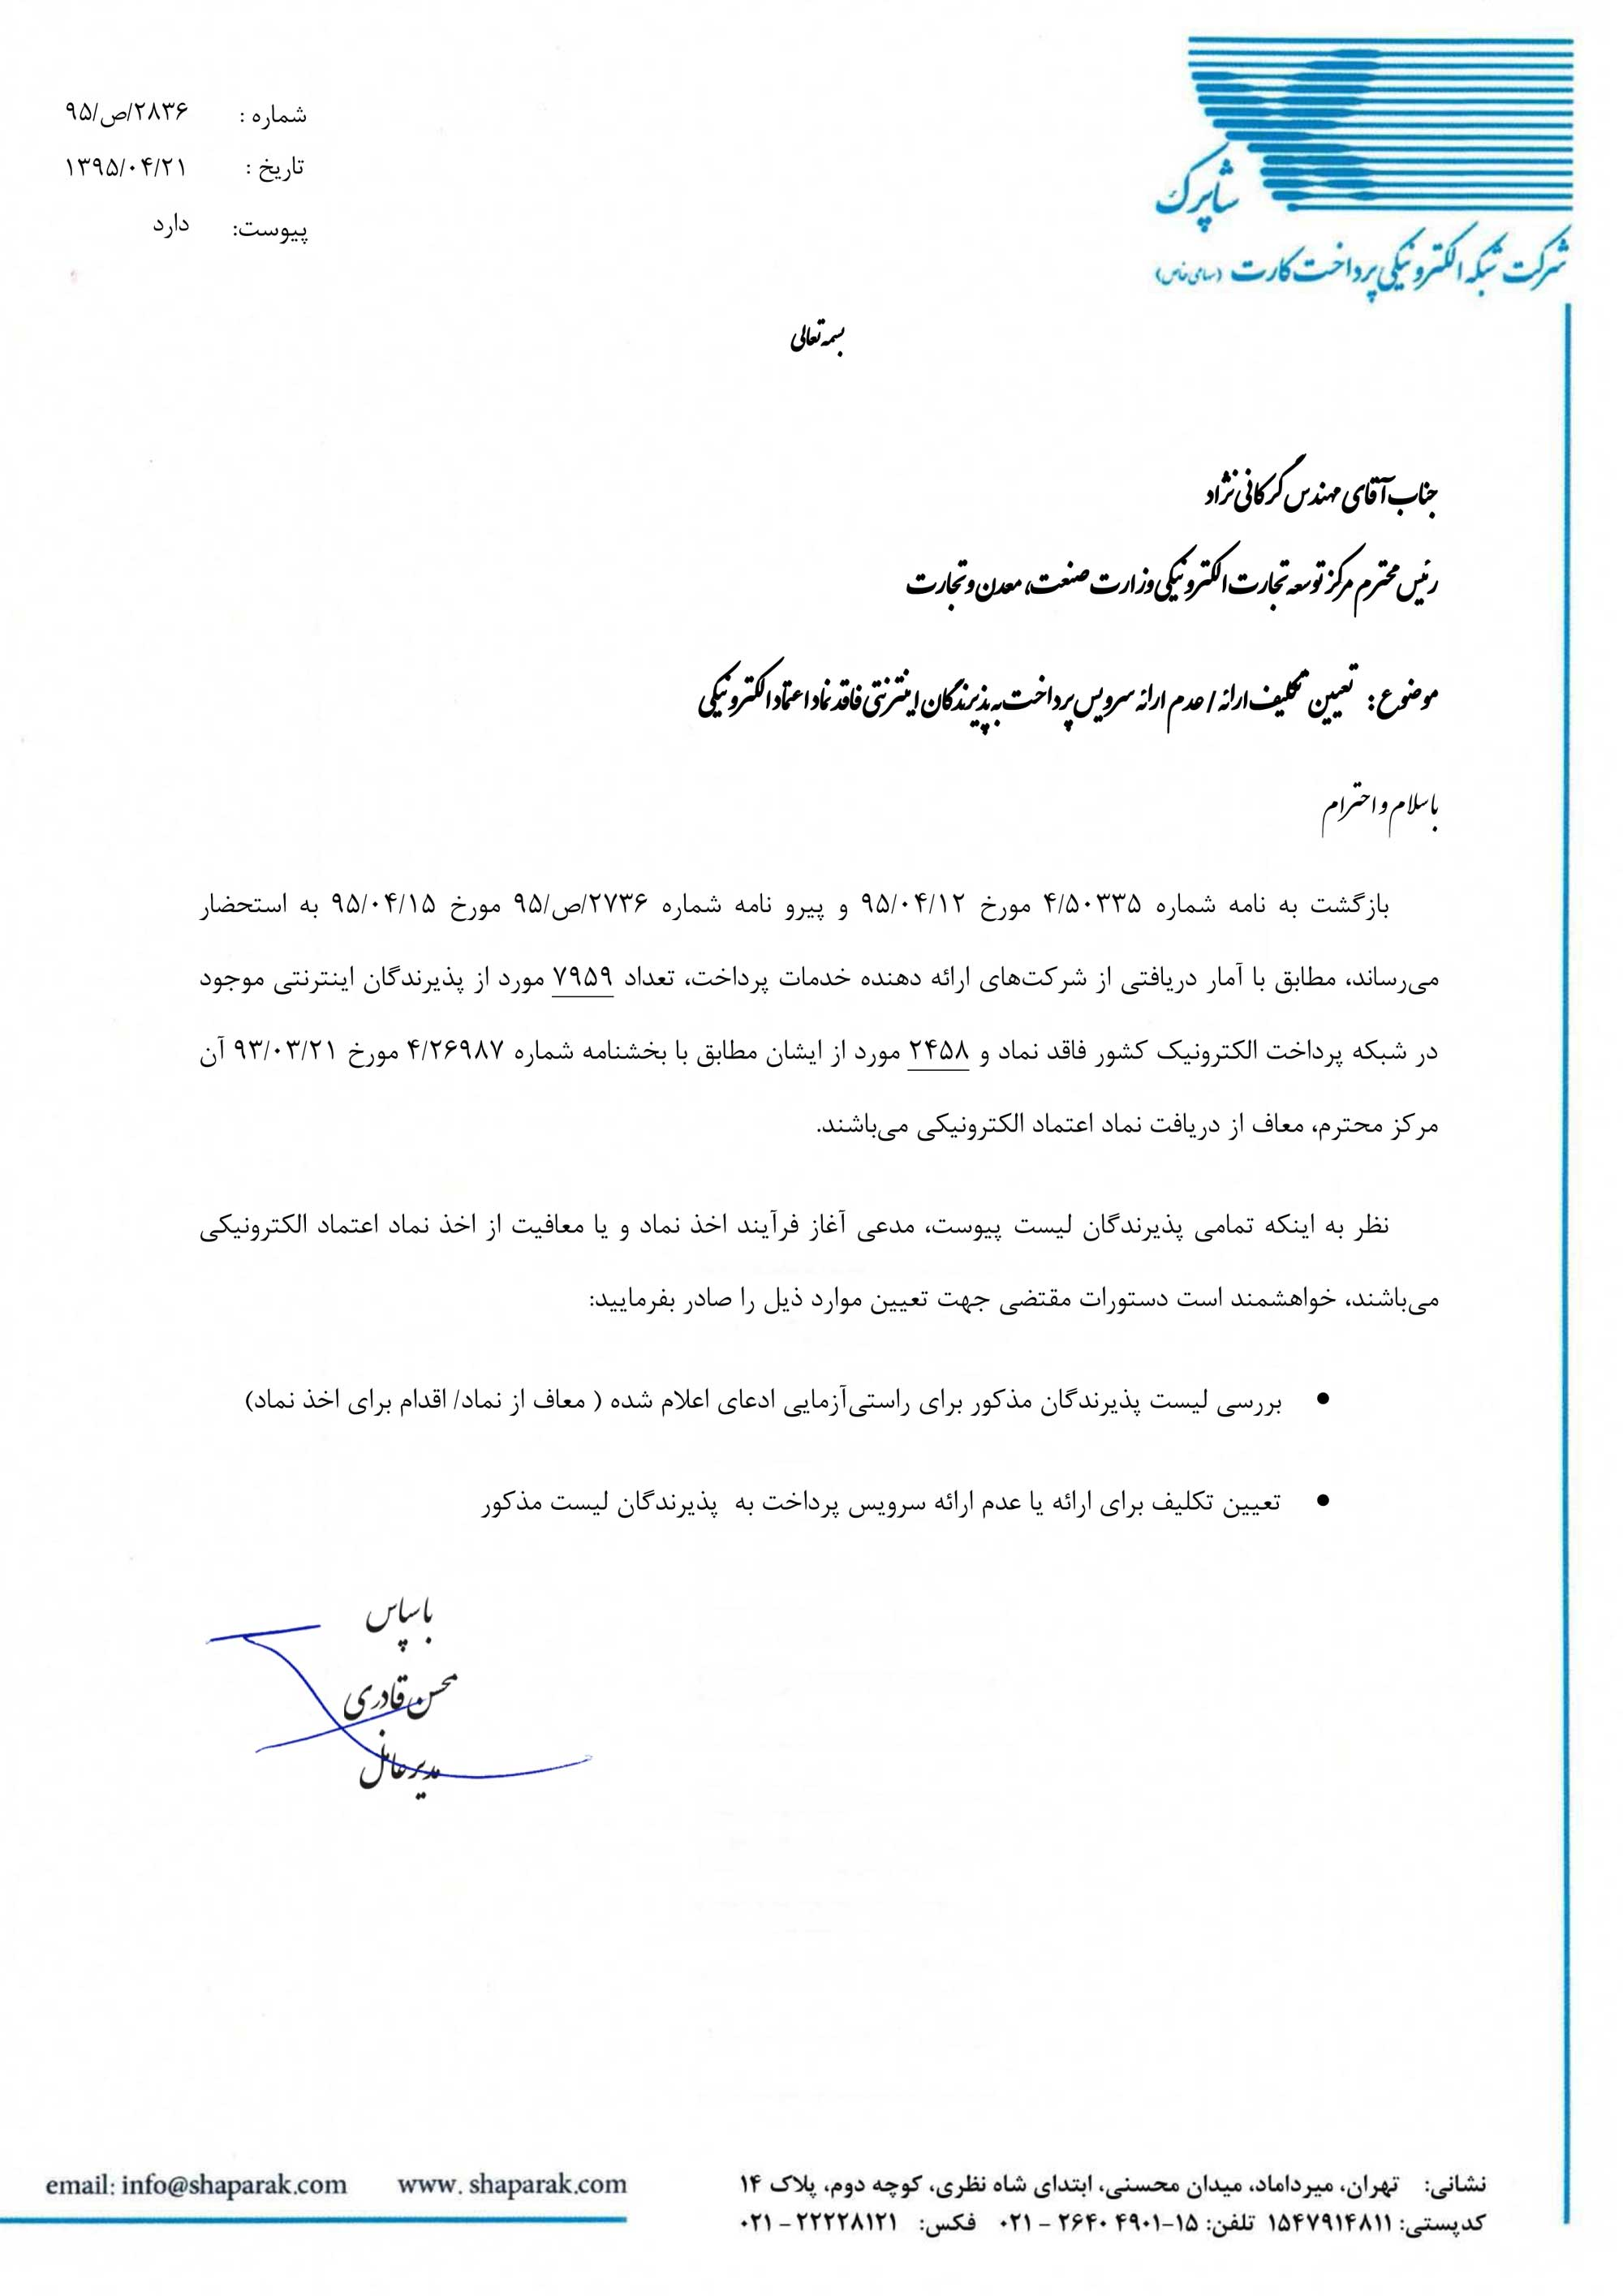 Letter-2000-Way2pay-95-06-14